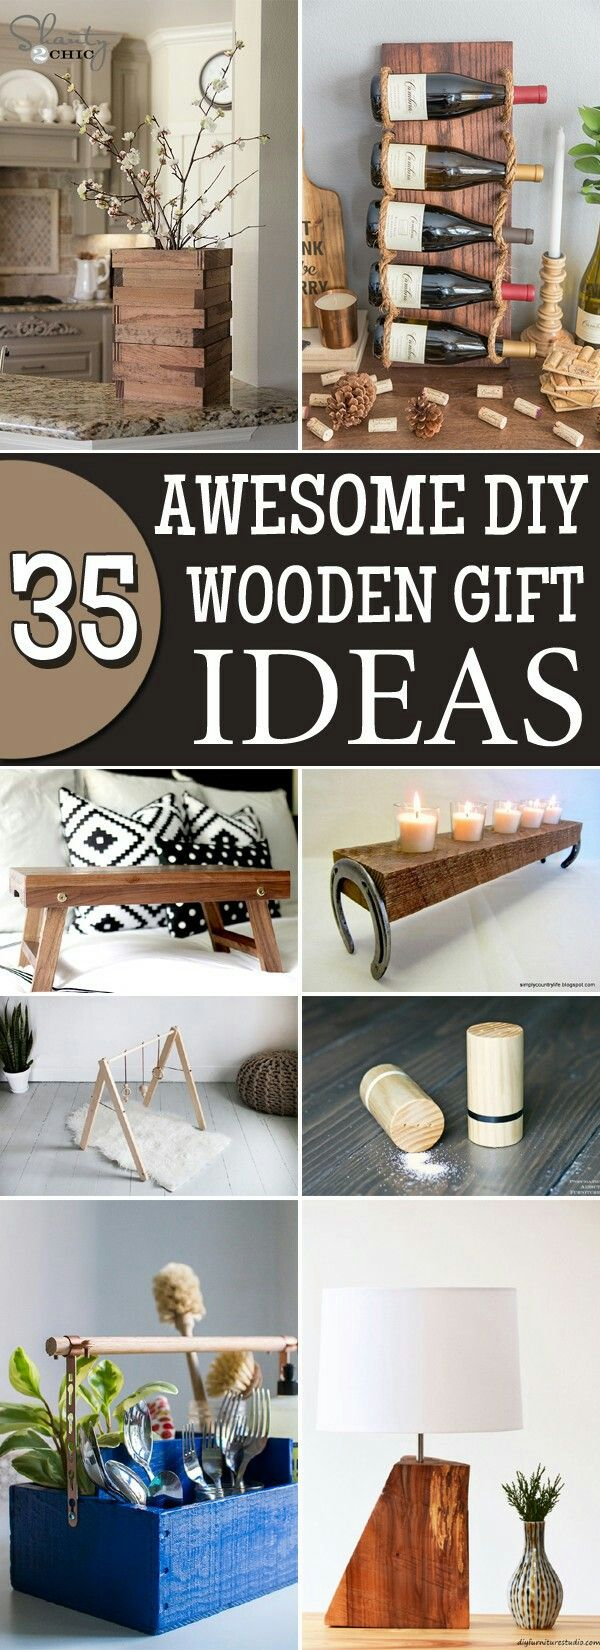 Wooden Gifts Are Always A Hit A Diy Wooden Projects Wooden Diy Wooden Gifts